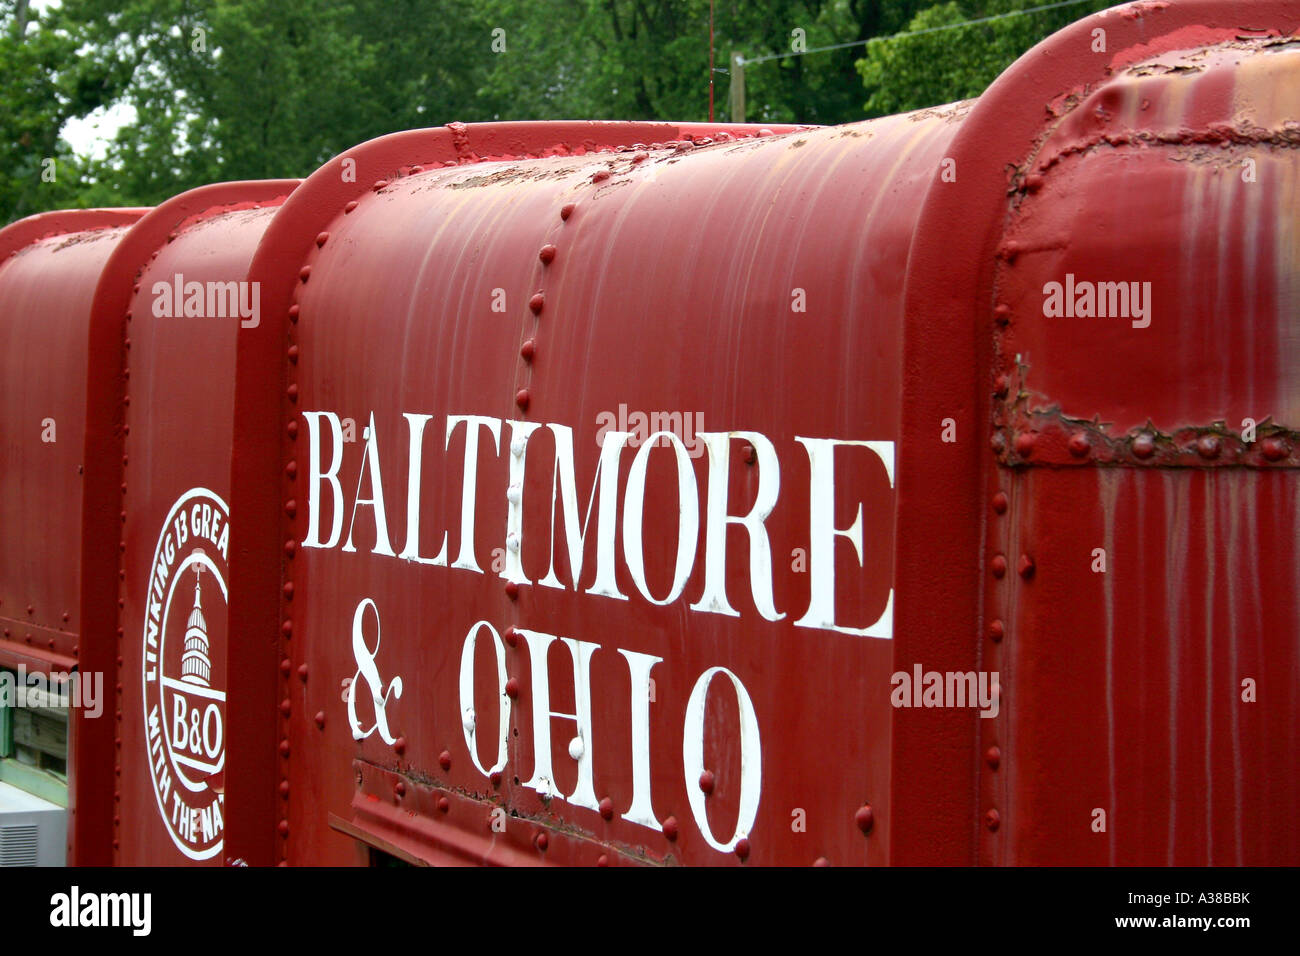 Restored Baltimore and Ohio Railroad Car in Levels West Virginia USA - Stock Image